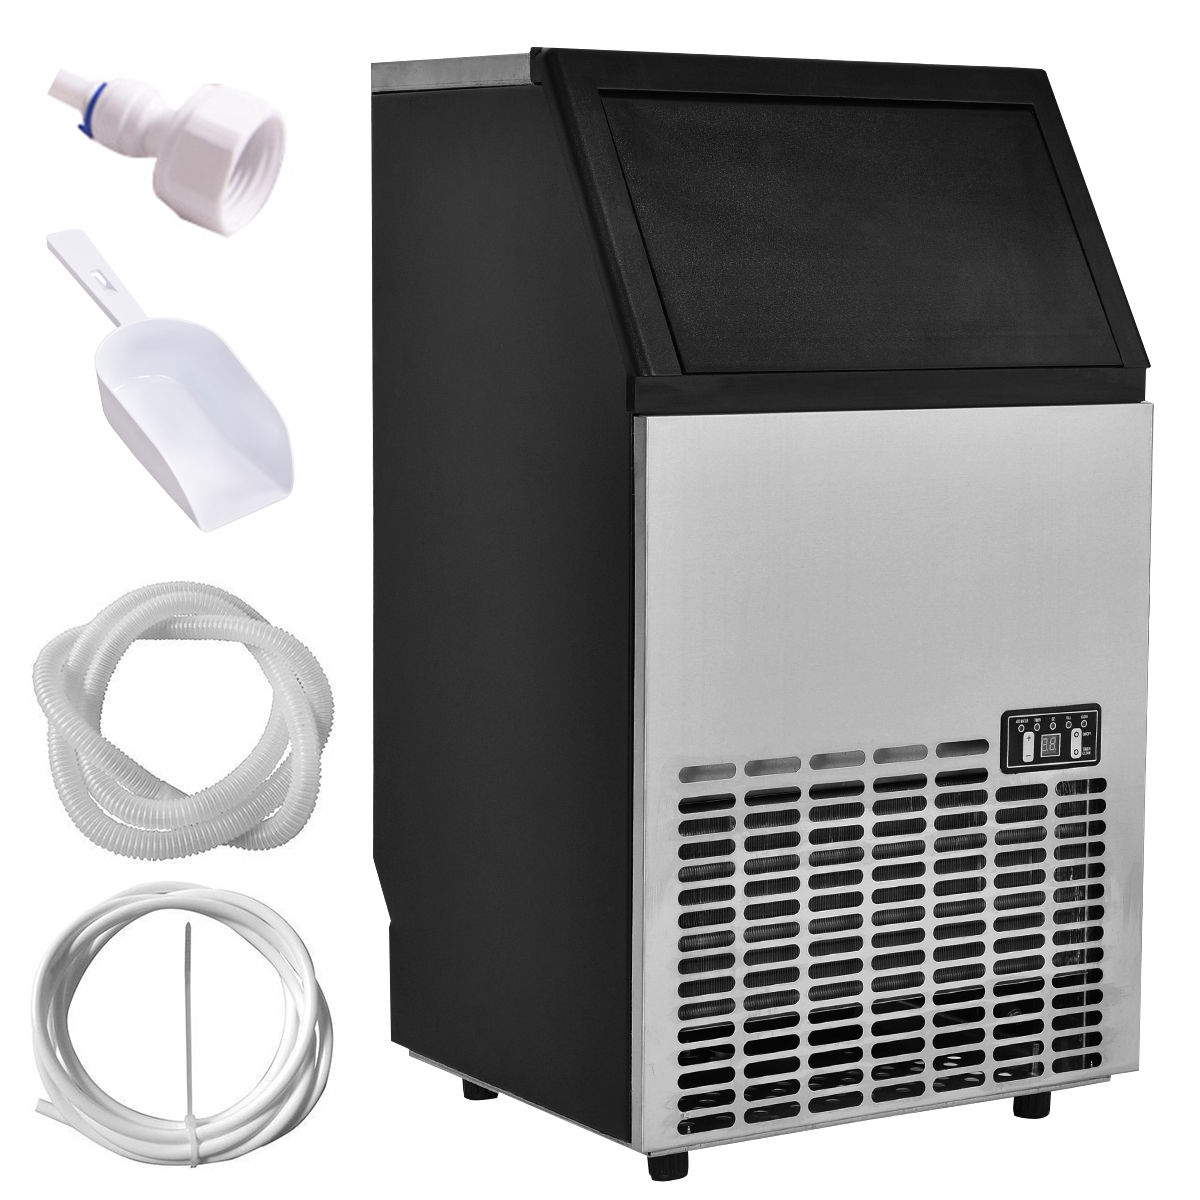 Costway Built-In Stainless Steel Commercial Ice Maker Portable Ice Machine Restaurant